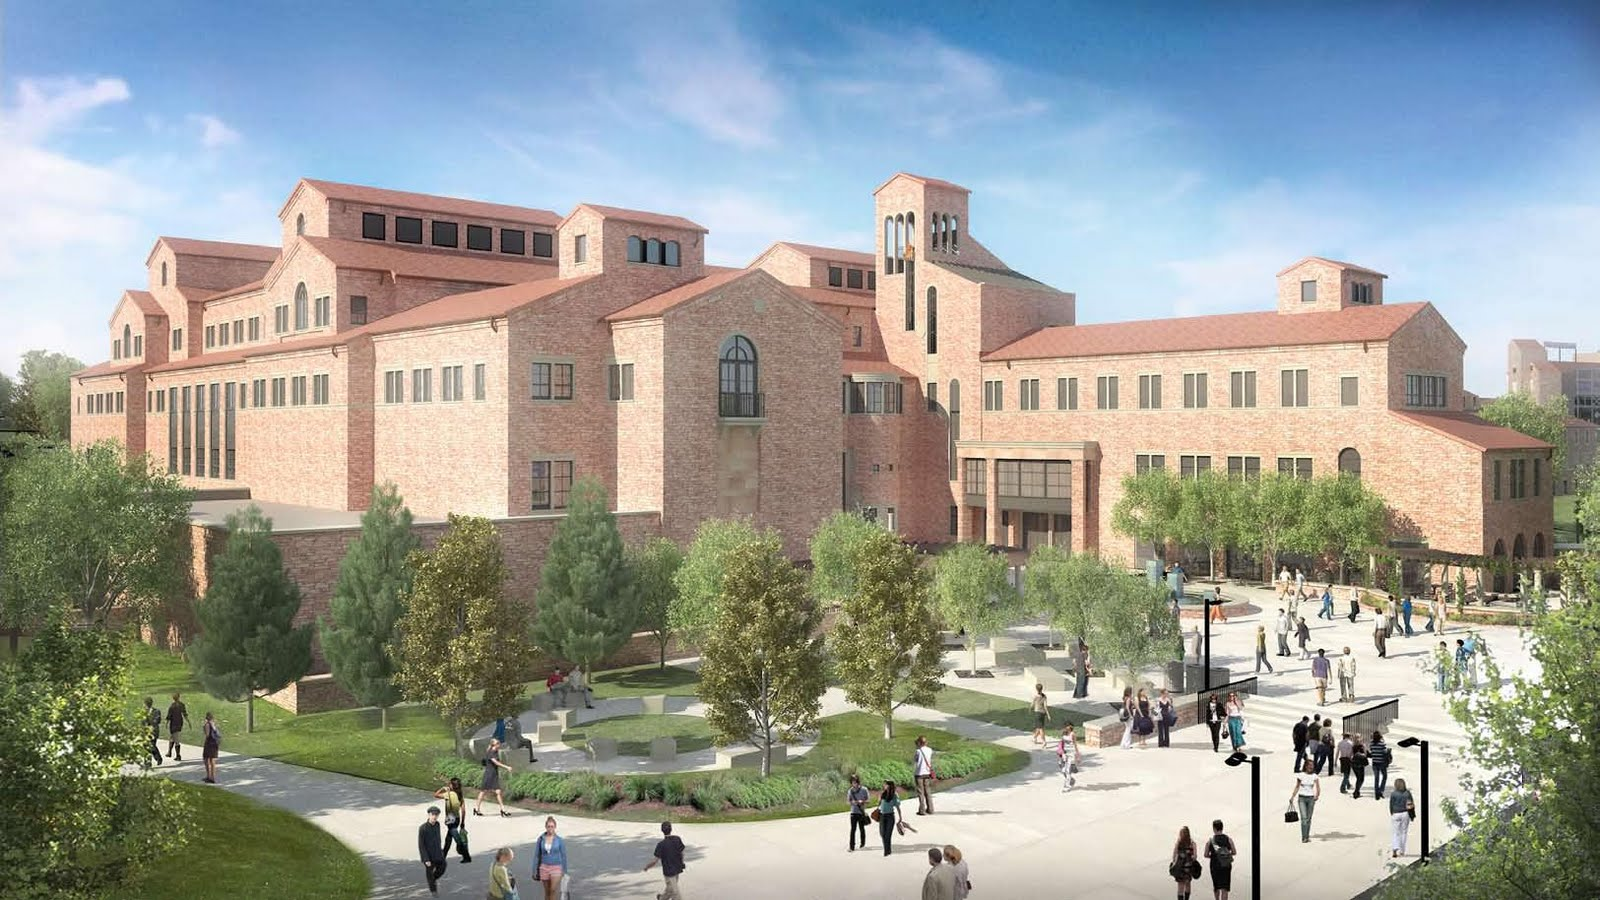 cu boulder career services career services is moving to c4c